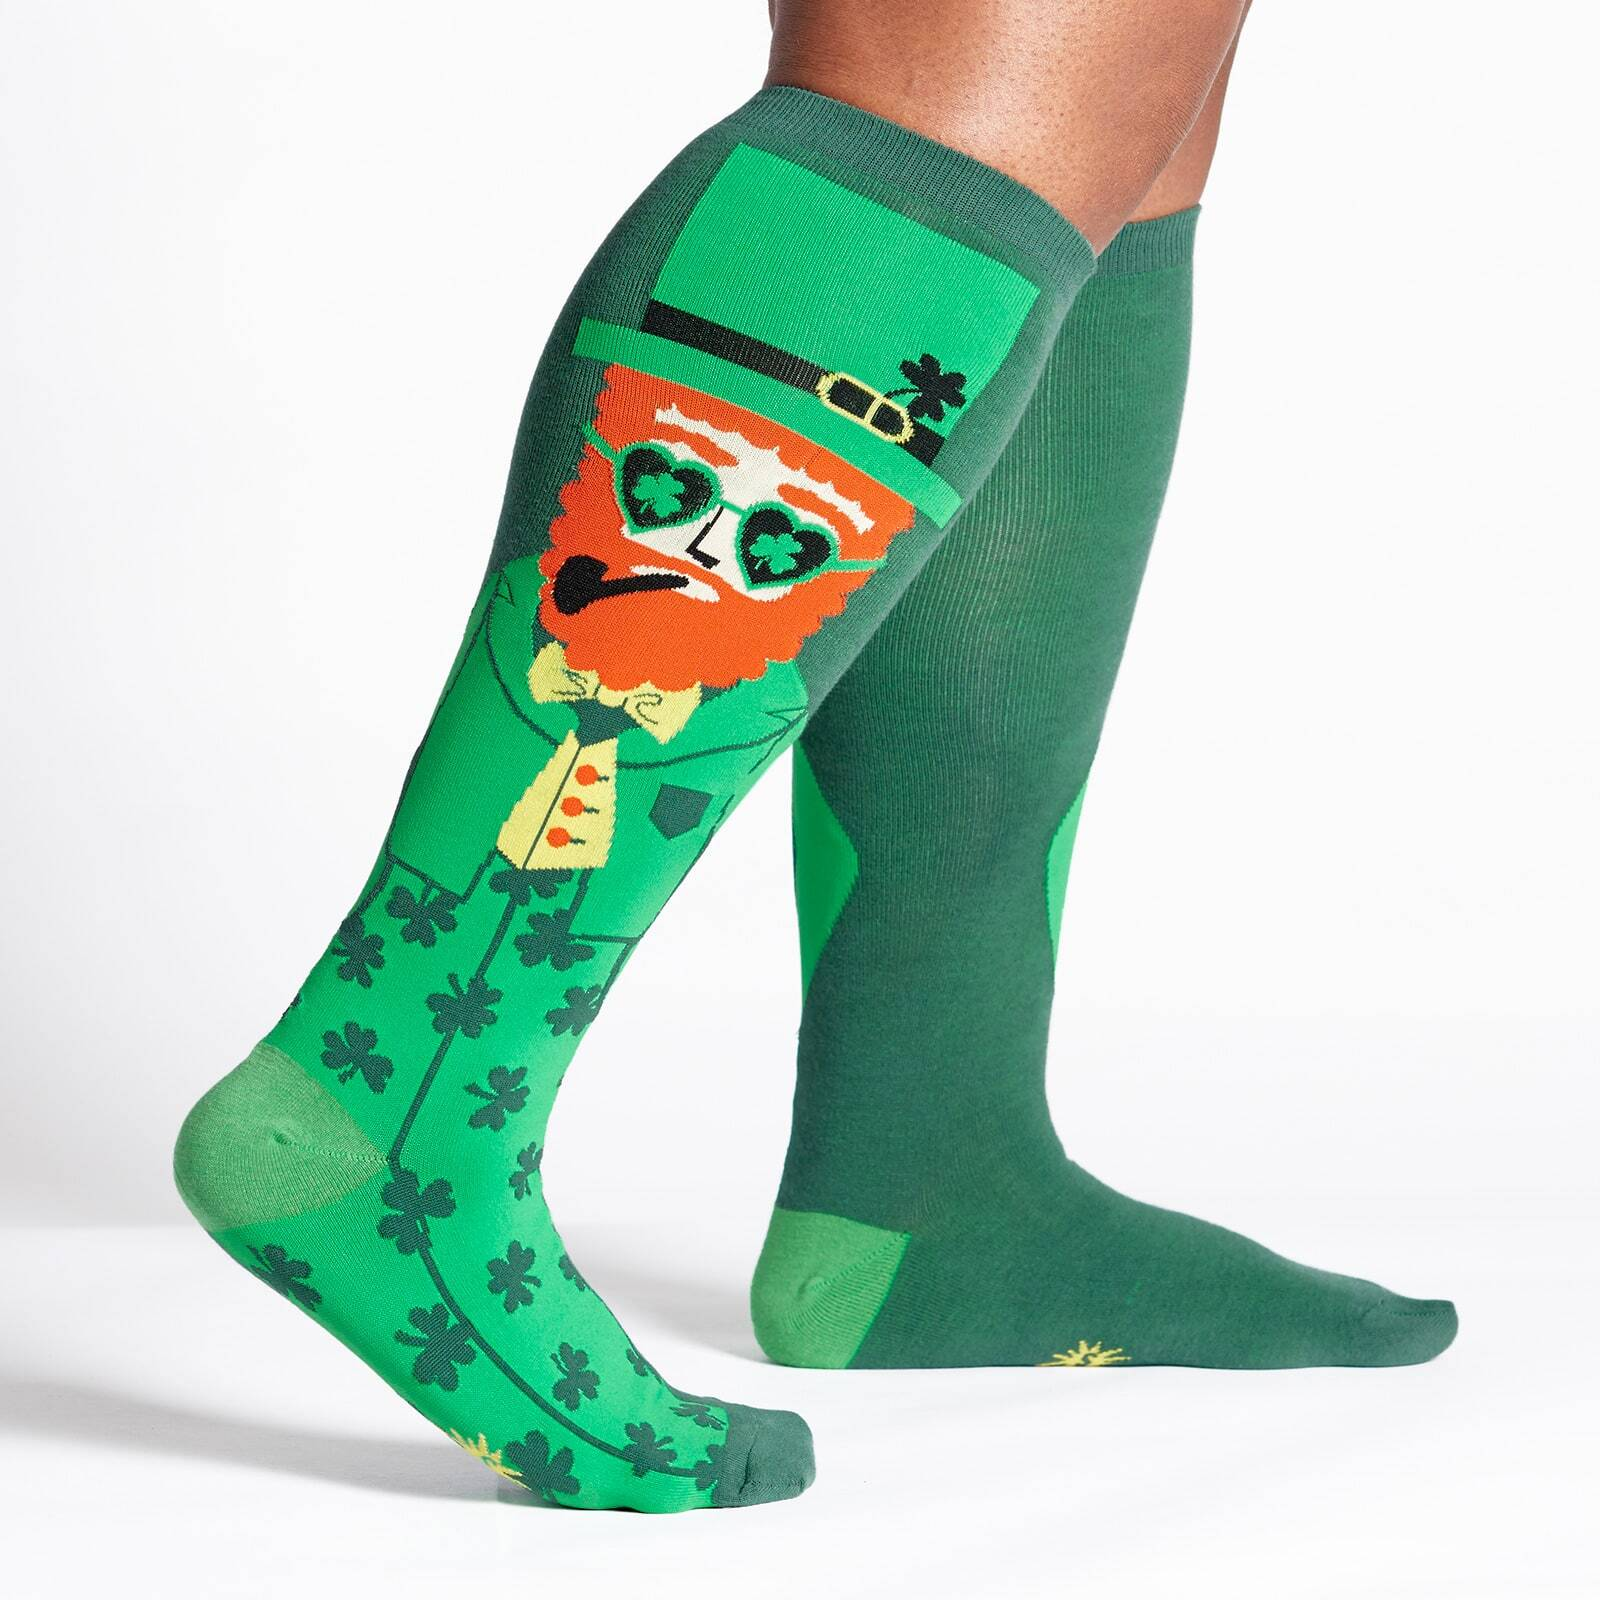 model wearing Your Lucky Charm - Wide Calf - St. Patrick's Knee High Socks Green - Unisex